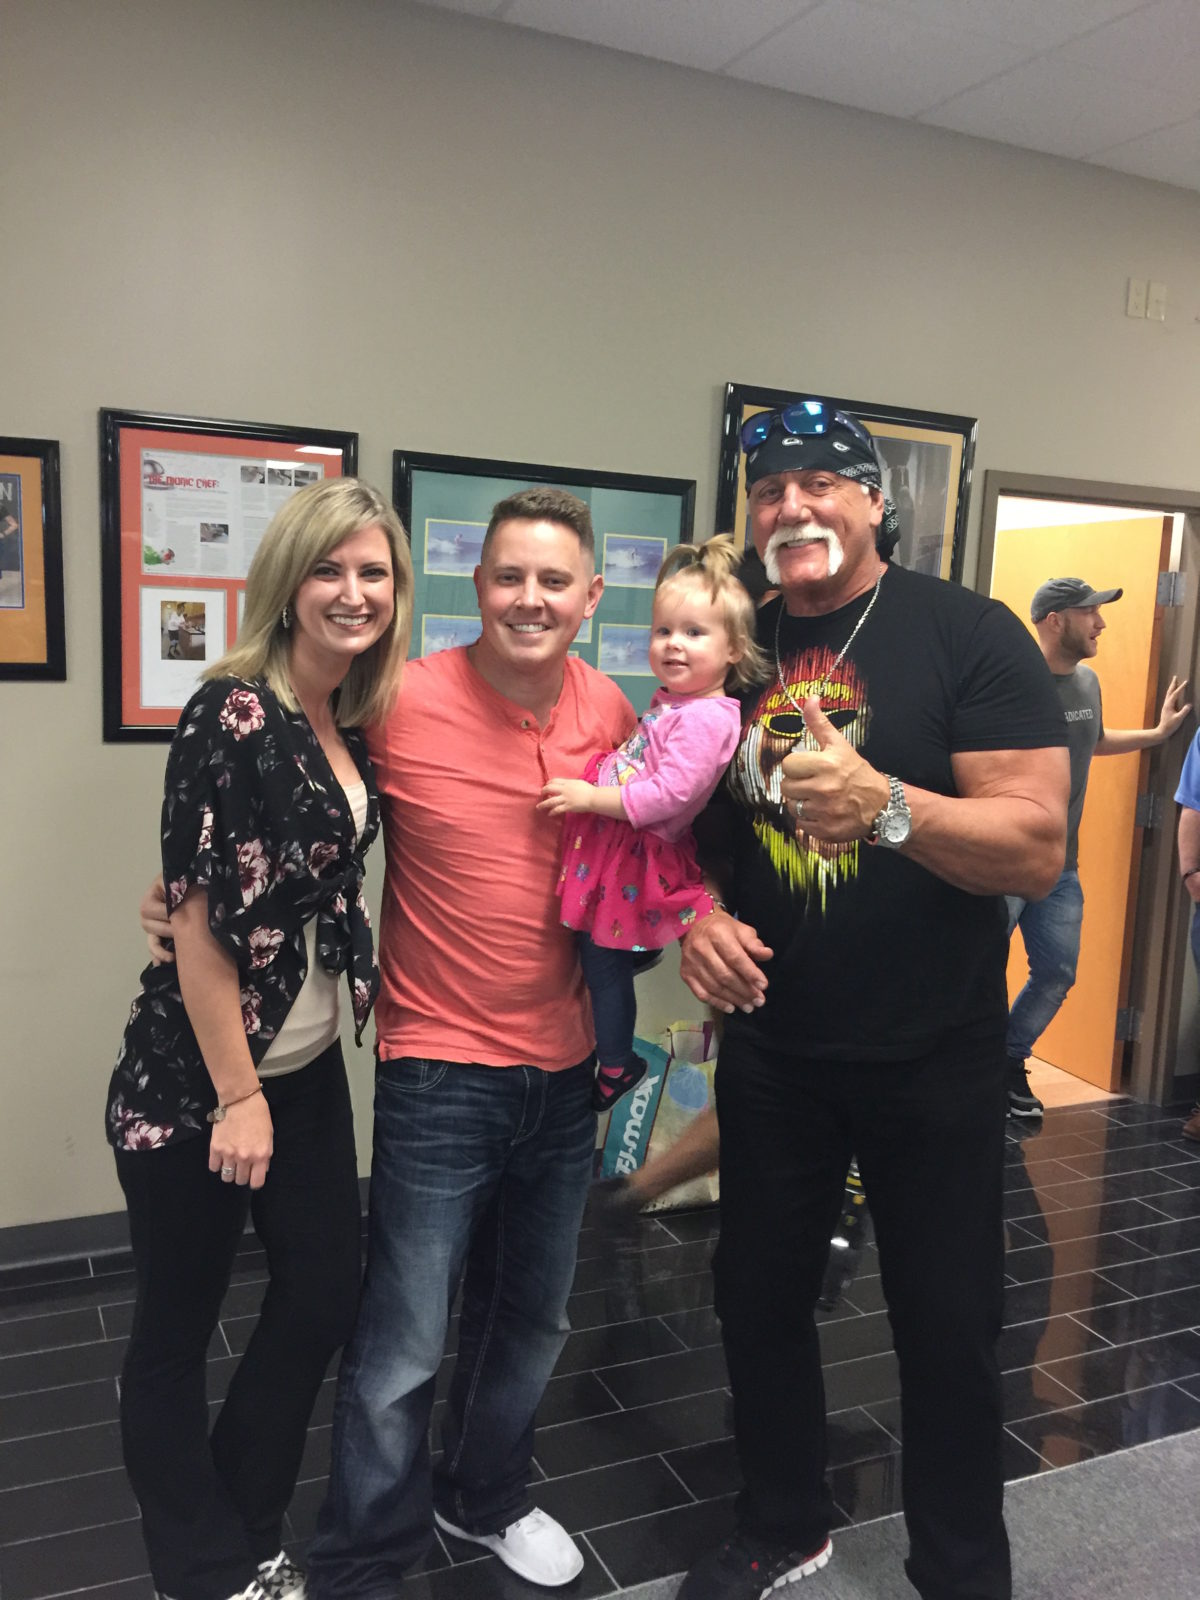 Hulk Hogan & Rebekah Gregory At POA